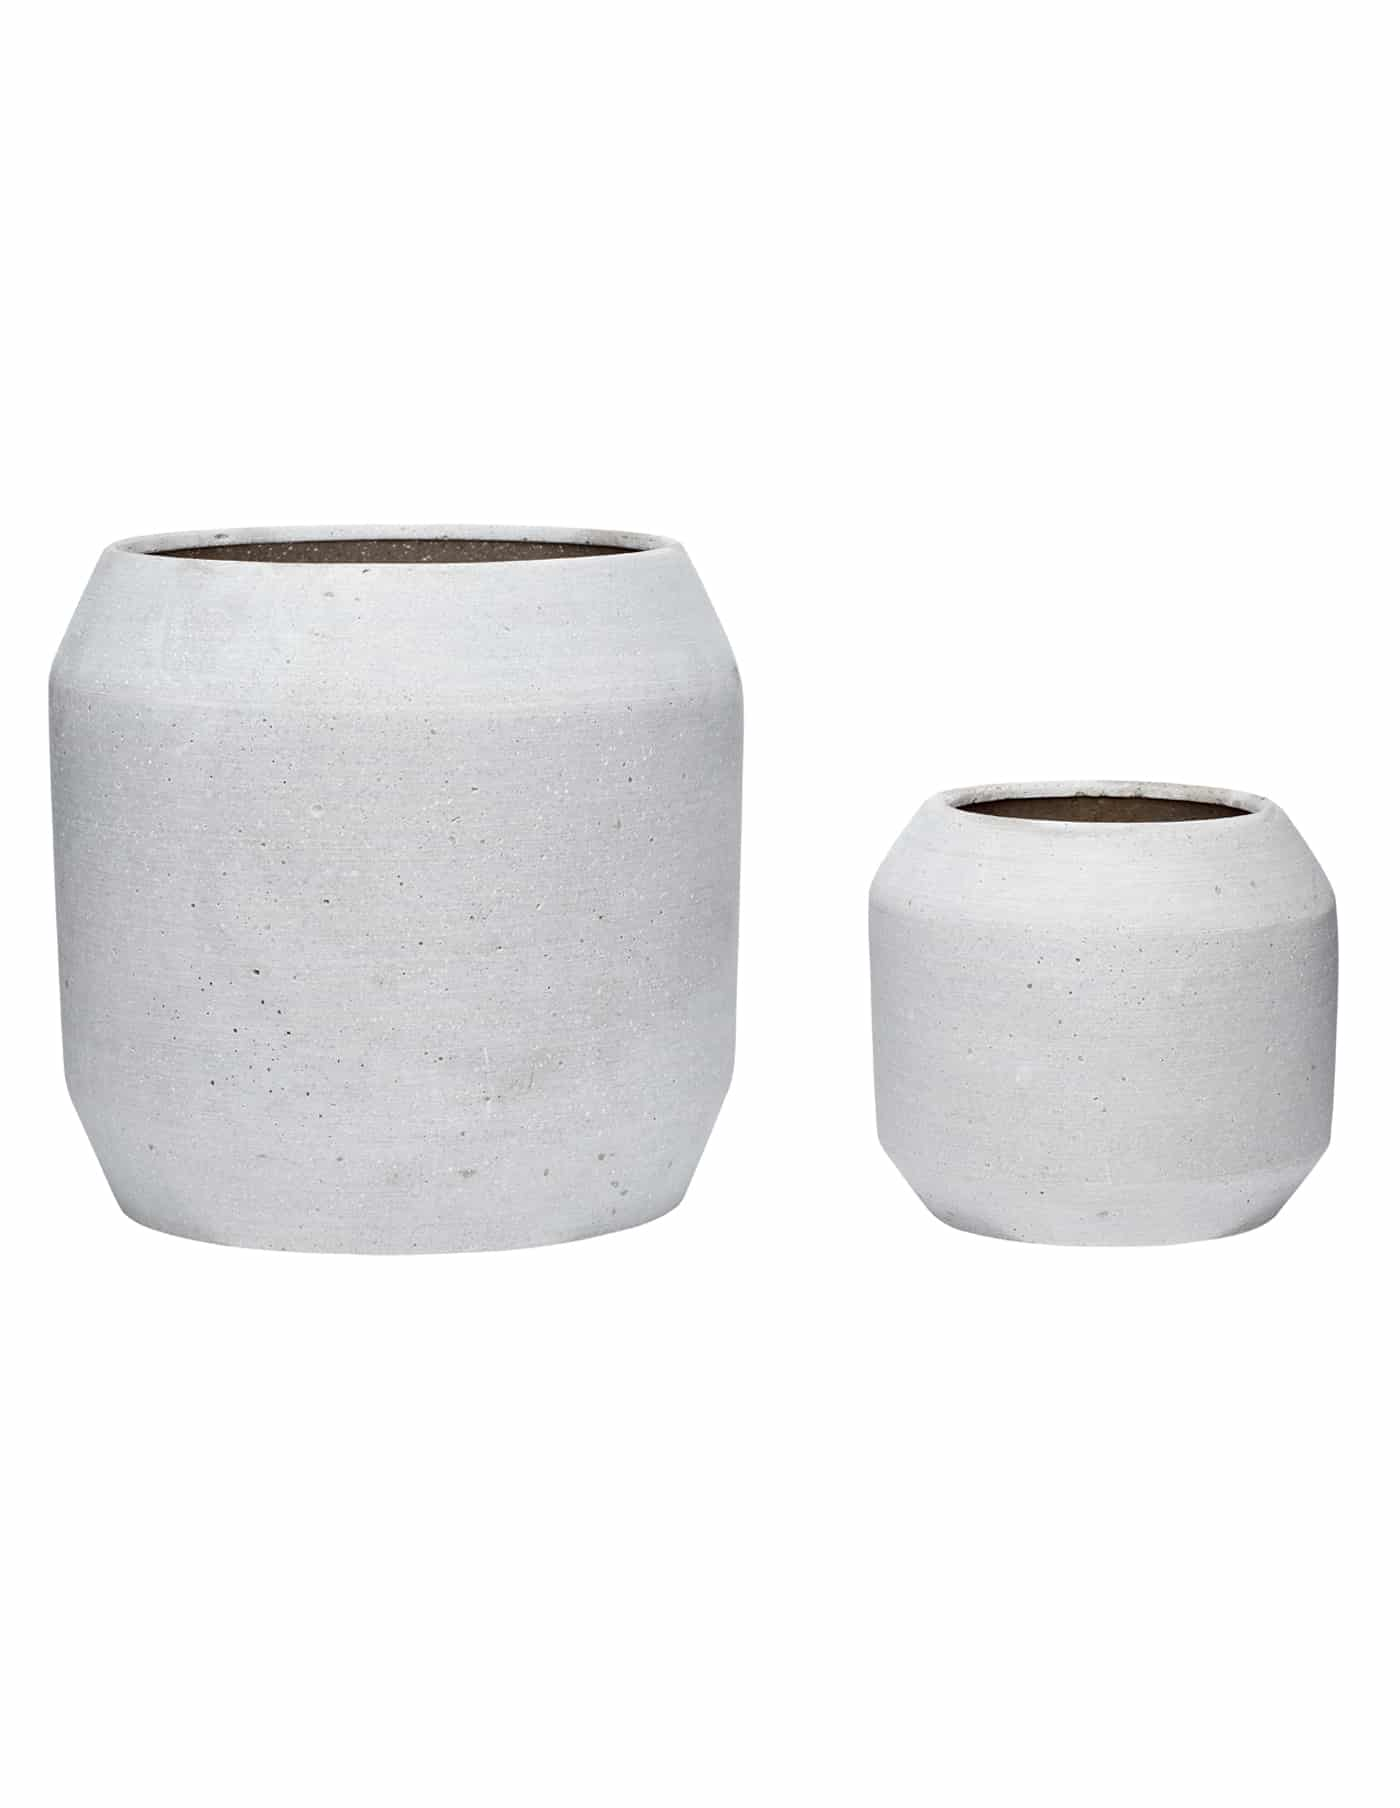 Hübsch Grey Rounded Plant Pot, Set of Two